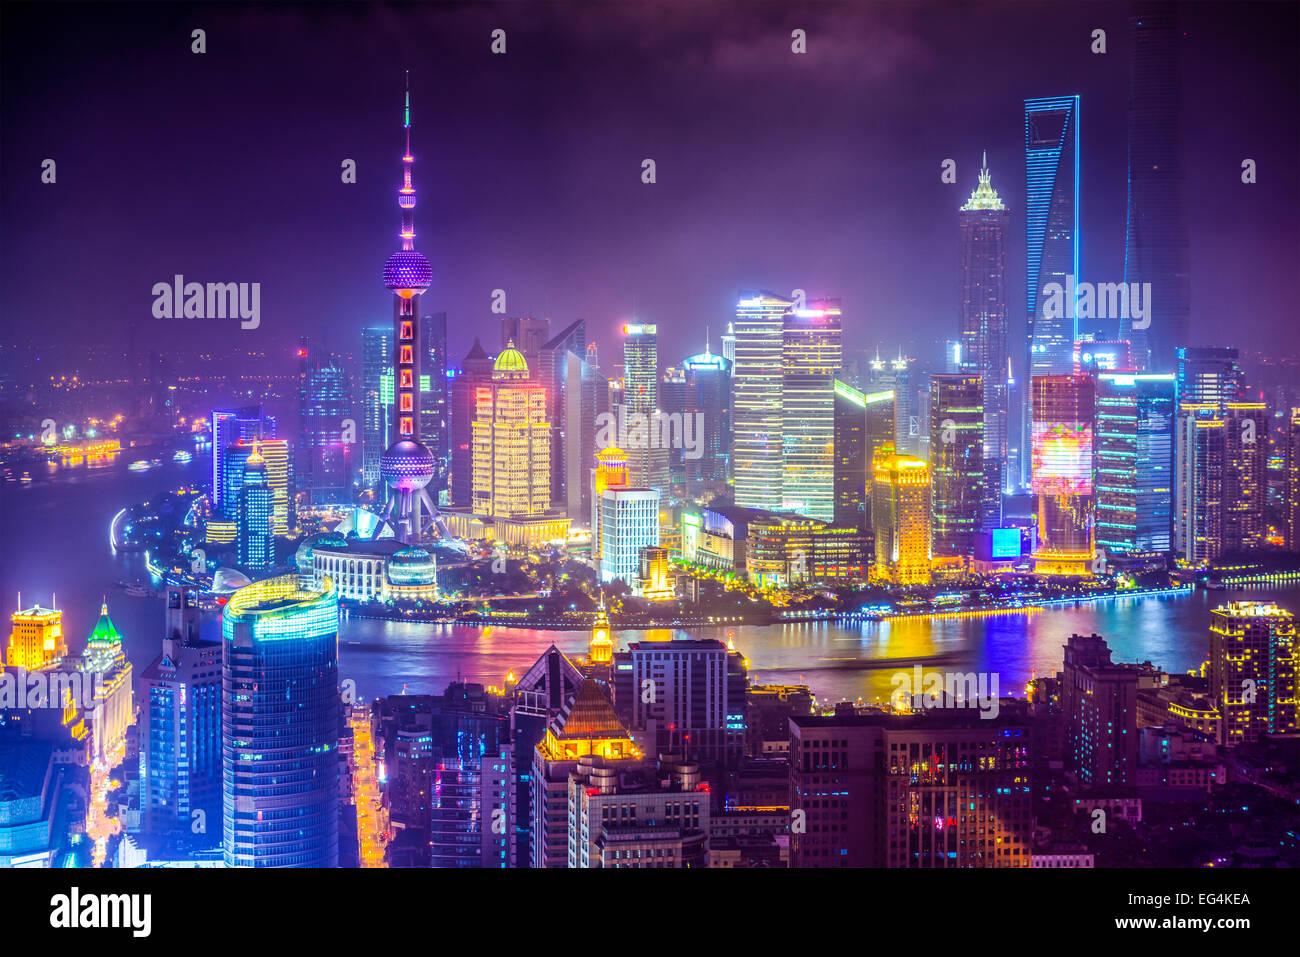 Shanghai, China aerial view cityscape. - Stock Image